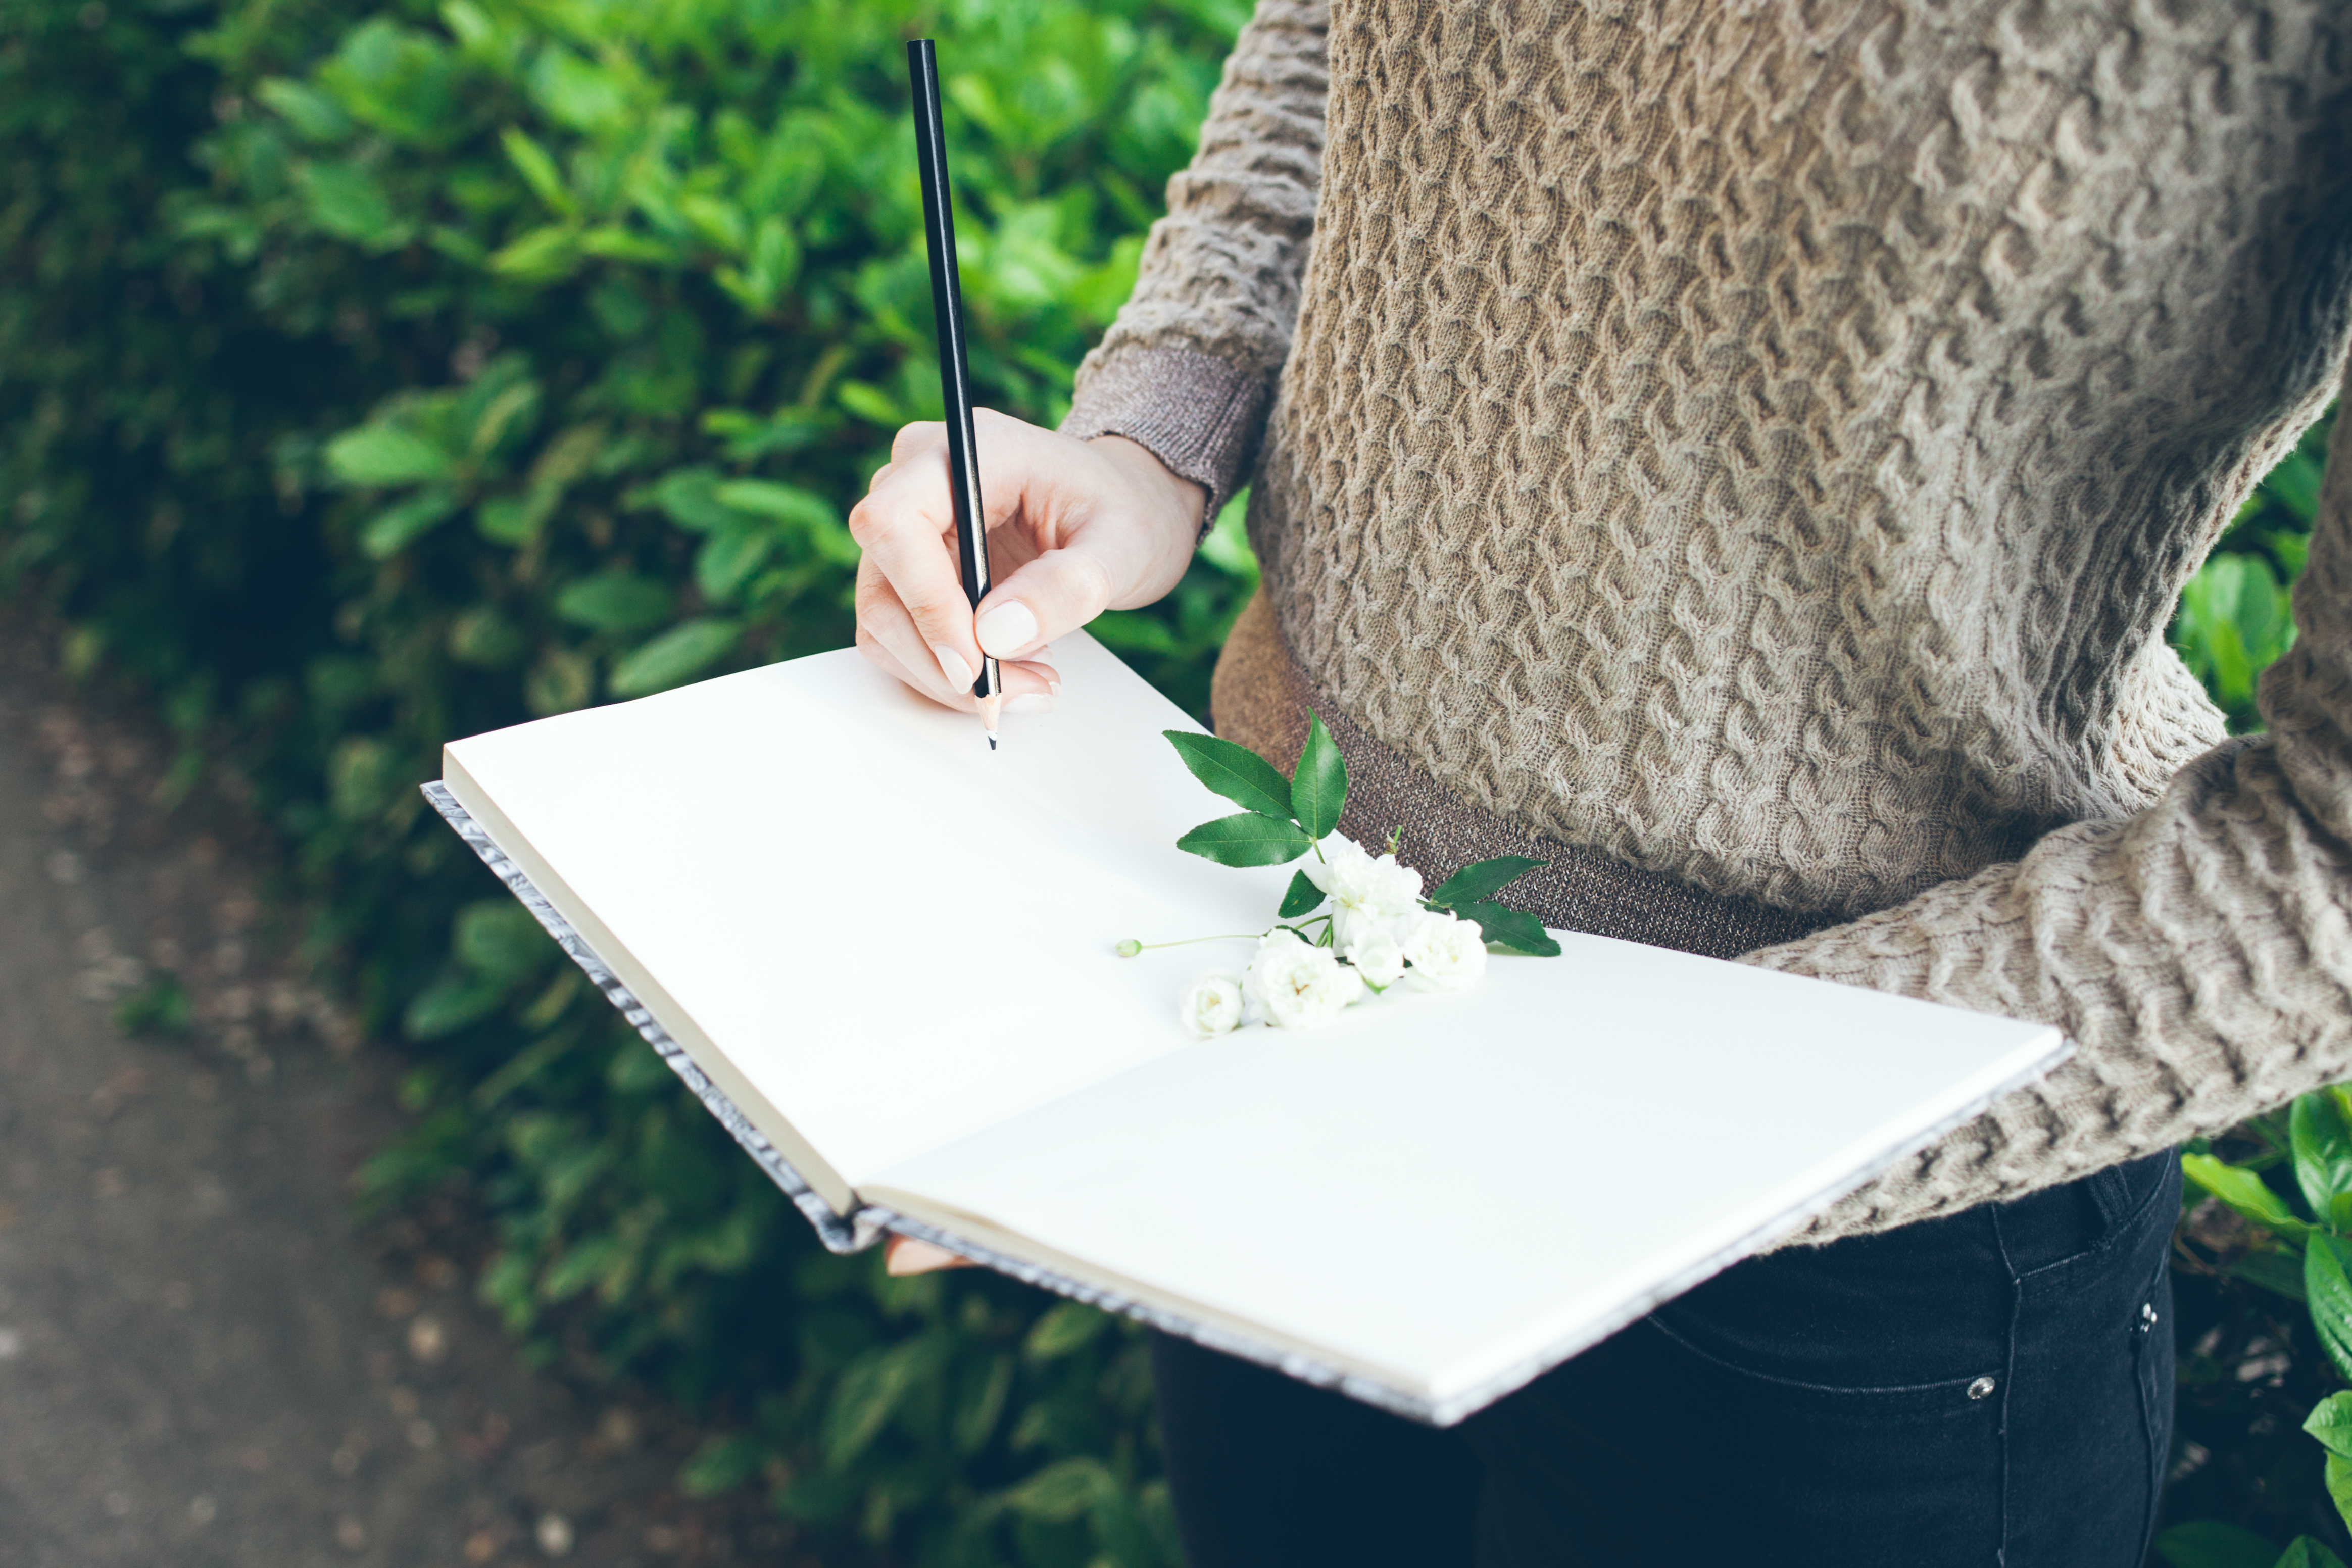 architect woman is planning new landscape project and drawing sketches an